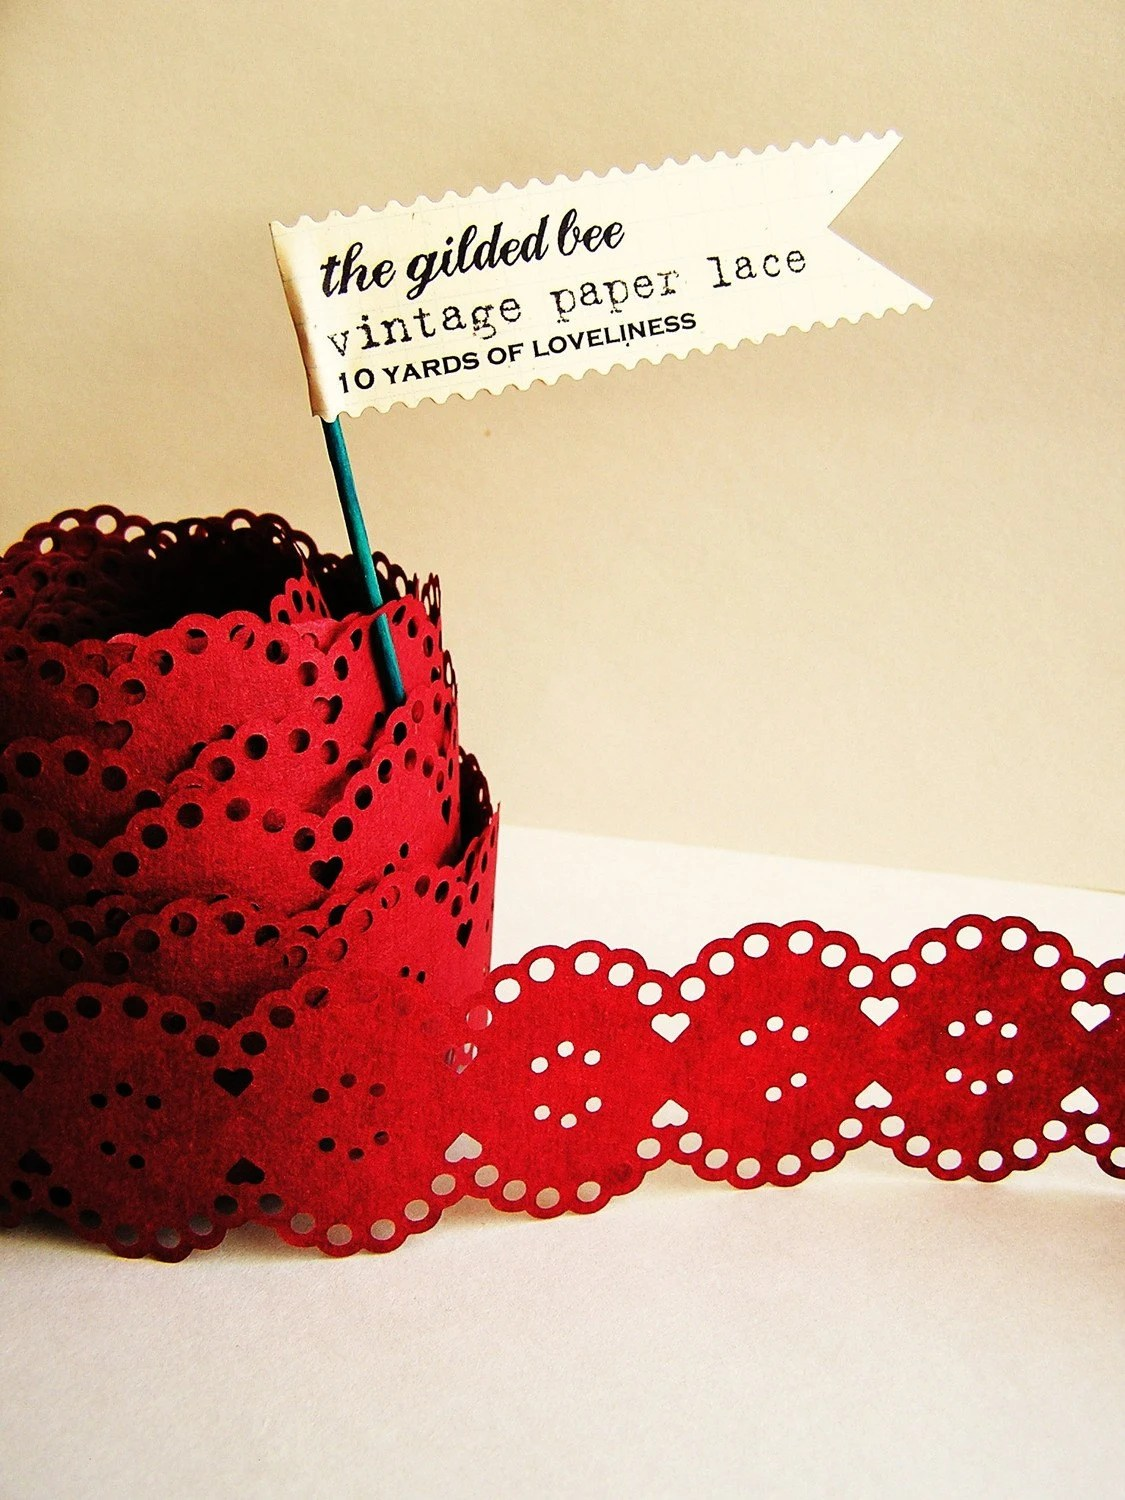 Merlot Red Vintage paper lace Ribbon/ trim - for gift wrapping, altered art, scrapbooking, decorating, weddings, party supply, holiday